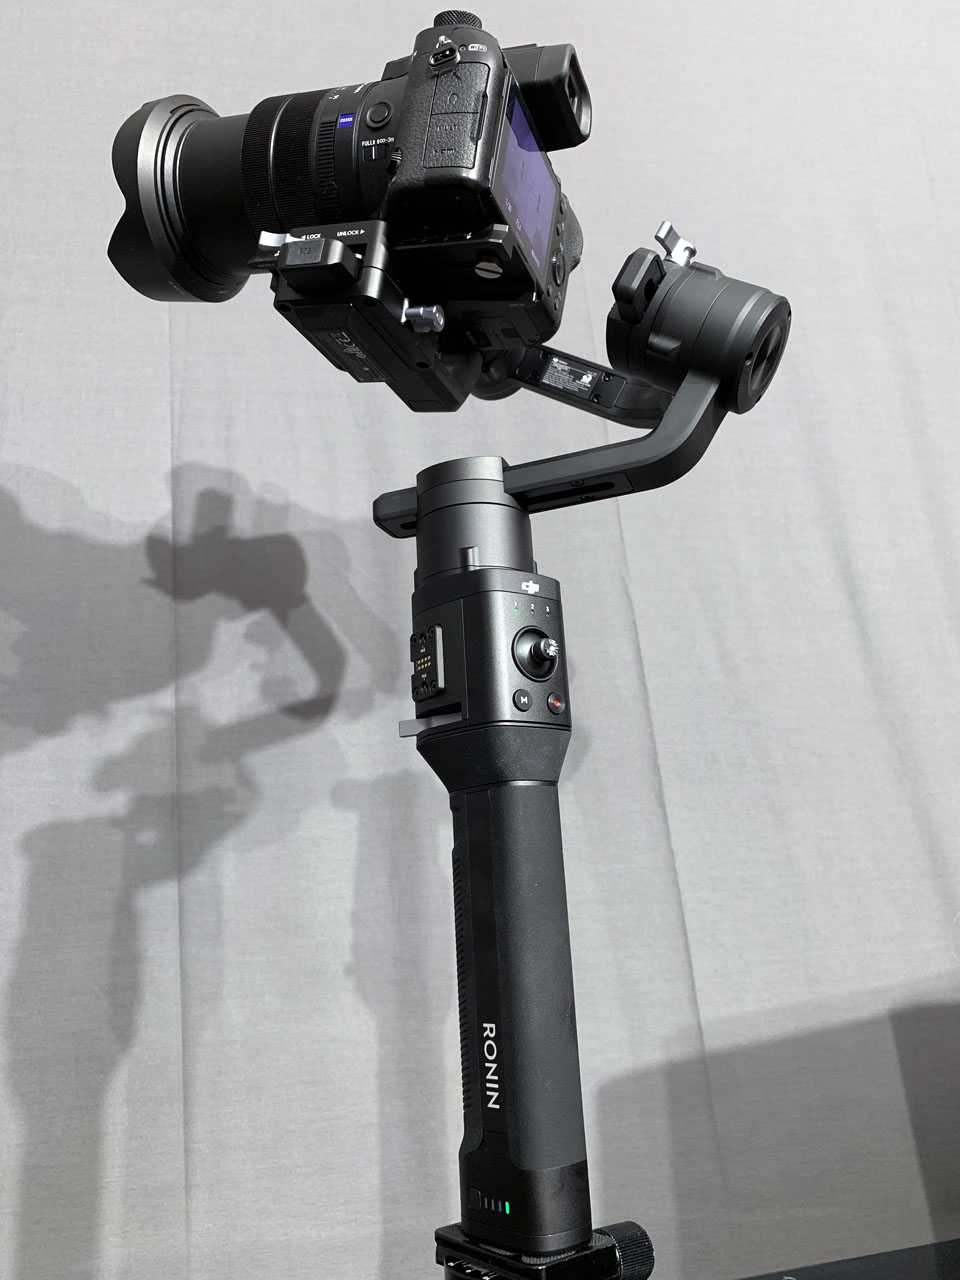 DJI Ronin S Gimbal Hands-On - AVS Forum | Home Theater